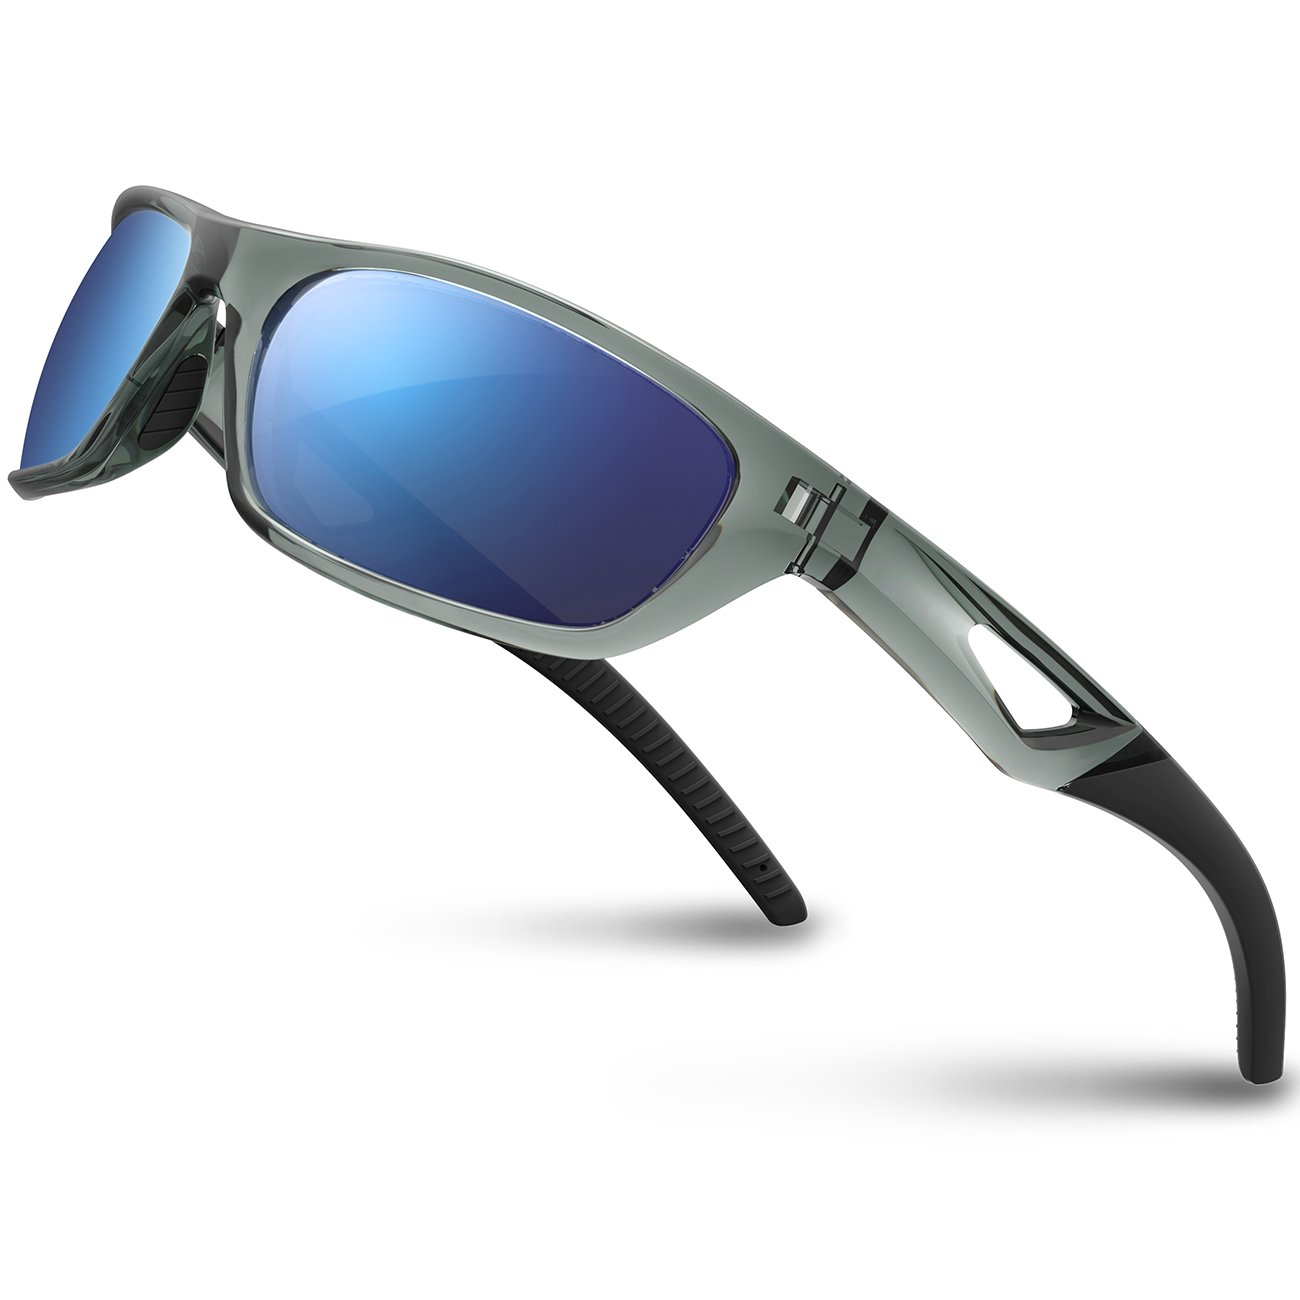 RIVBOS Polarized Sports Sunglasses Driving Glasses Shades for Men TR90 Unbreakable Frame for Cycling Baseball RB831